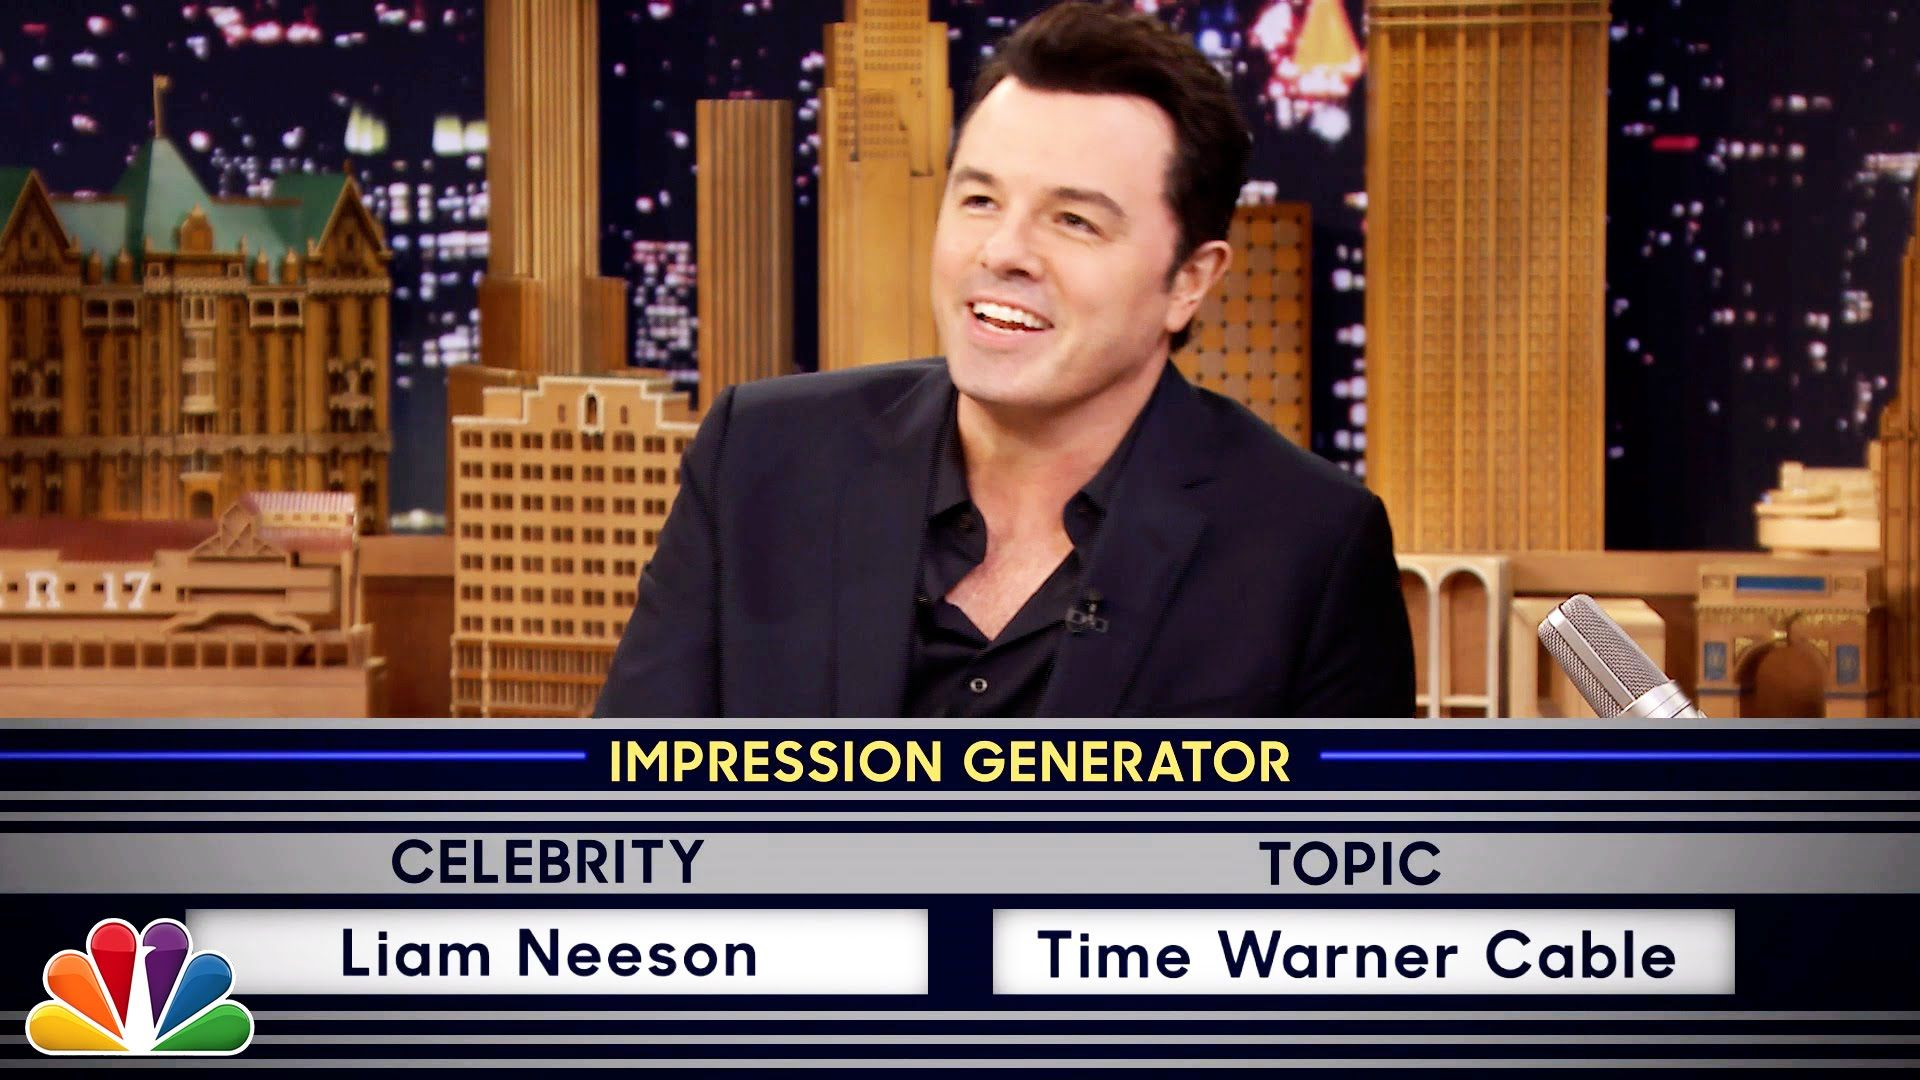 Wheel of Impressions with Seth MacFarlane. I was laughing